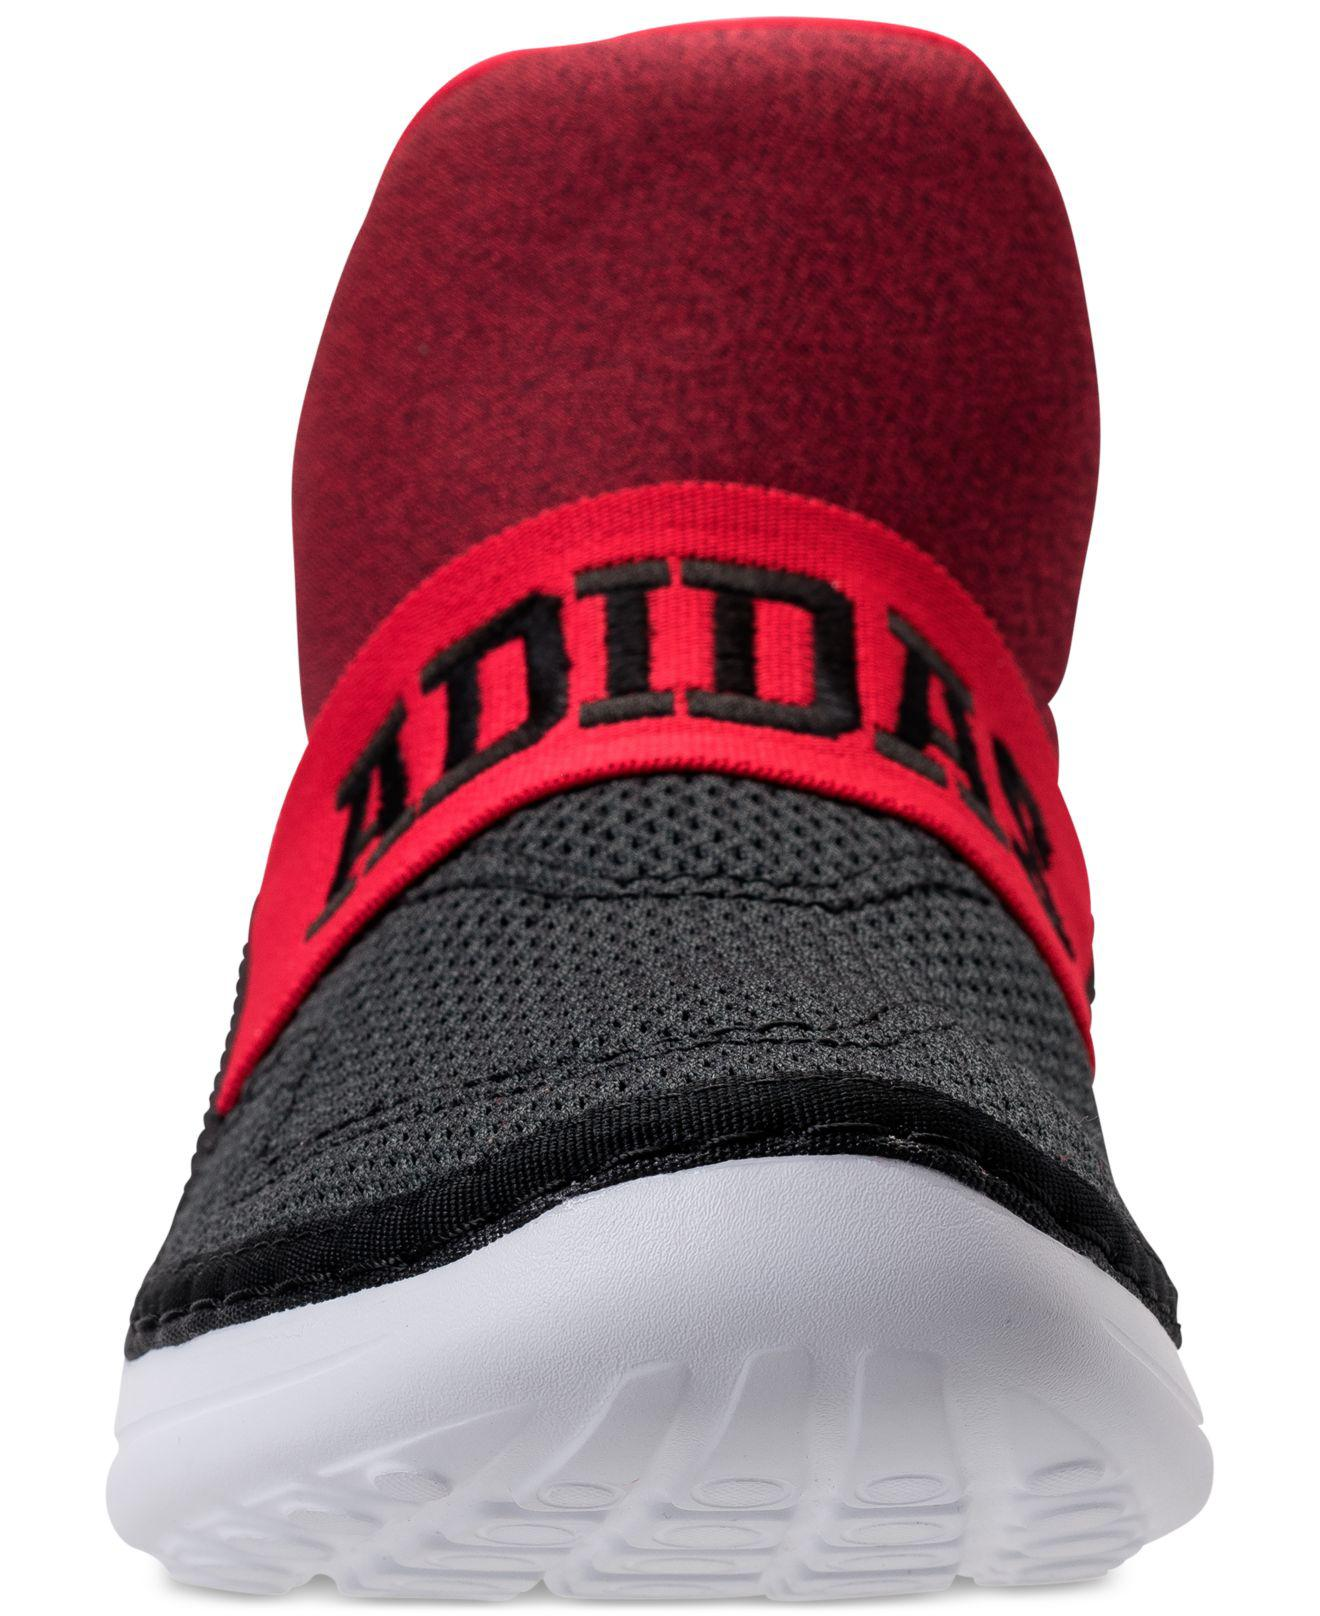 077ec8deba6e Lyst - Adidas Cloudfoam Zen Casual Sneakers From Finish Line in Red ...